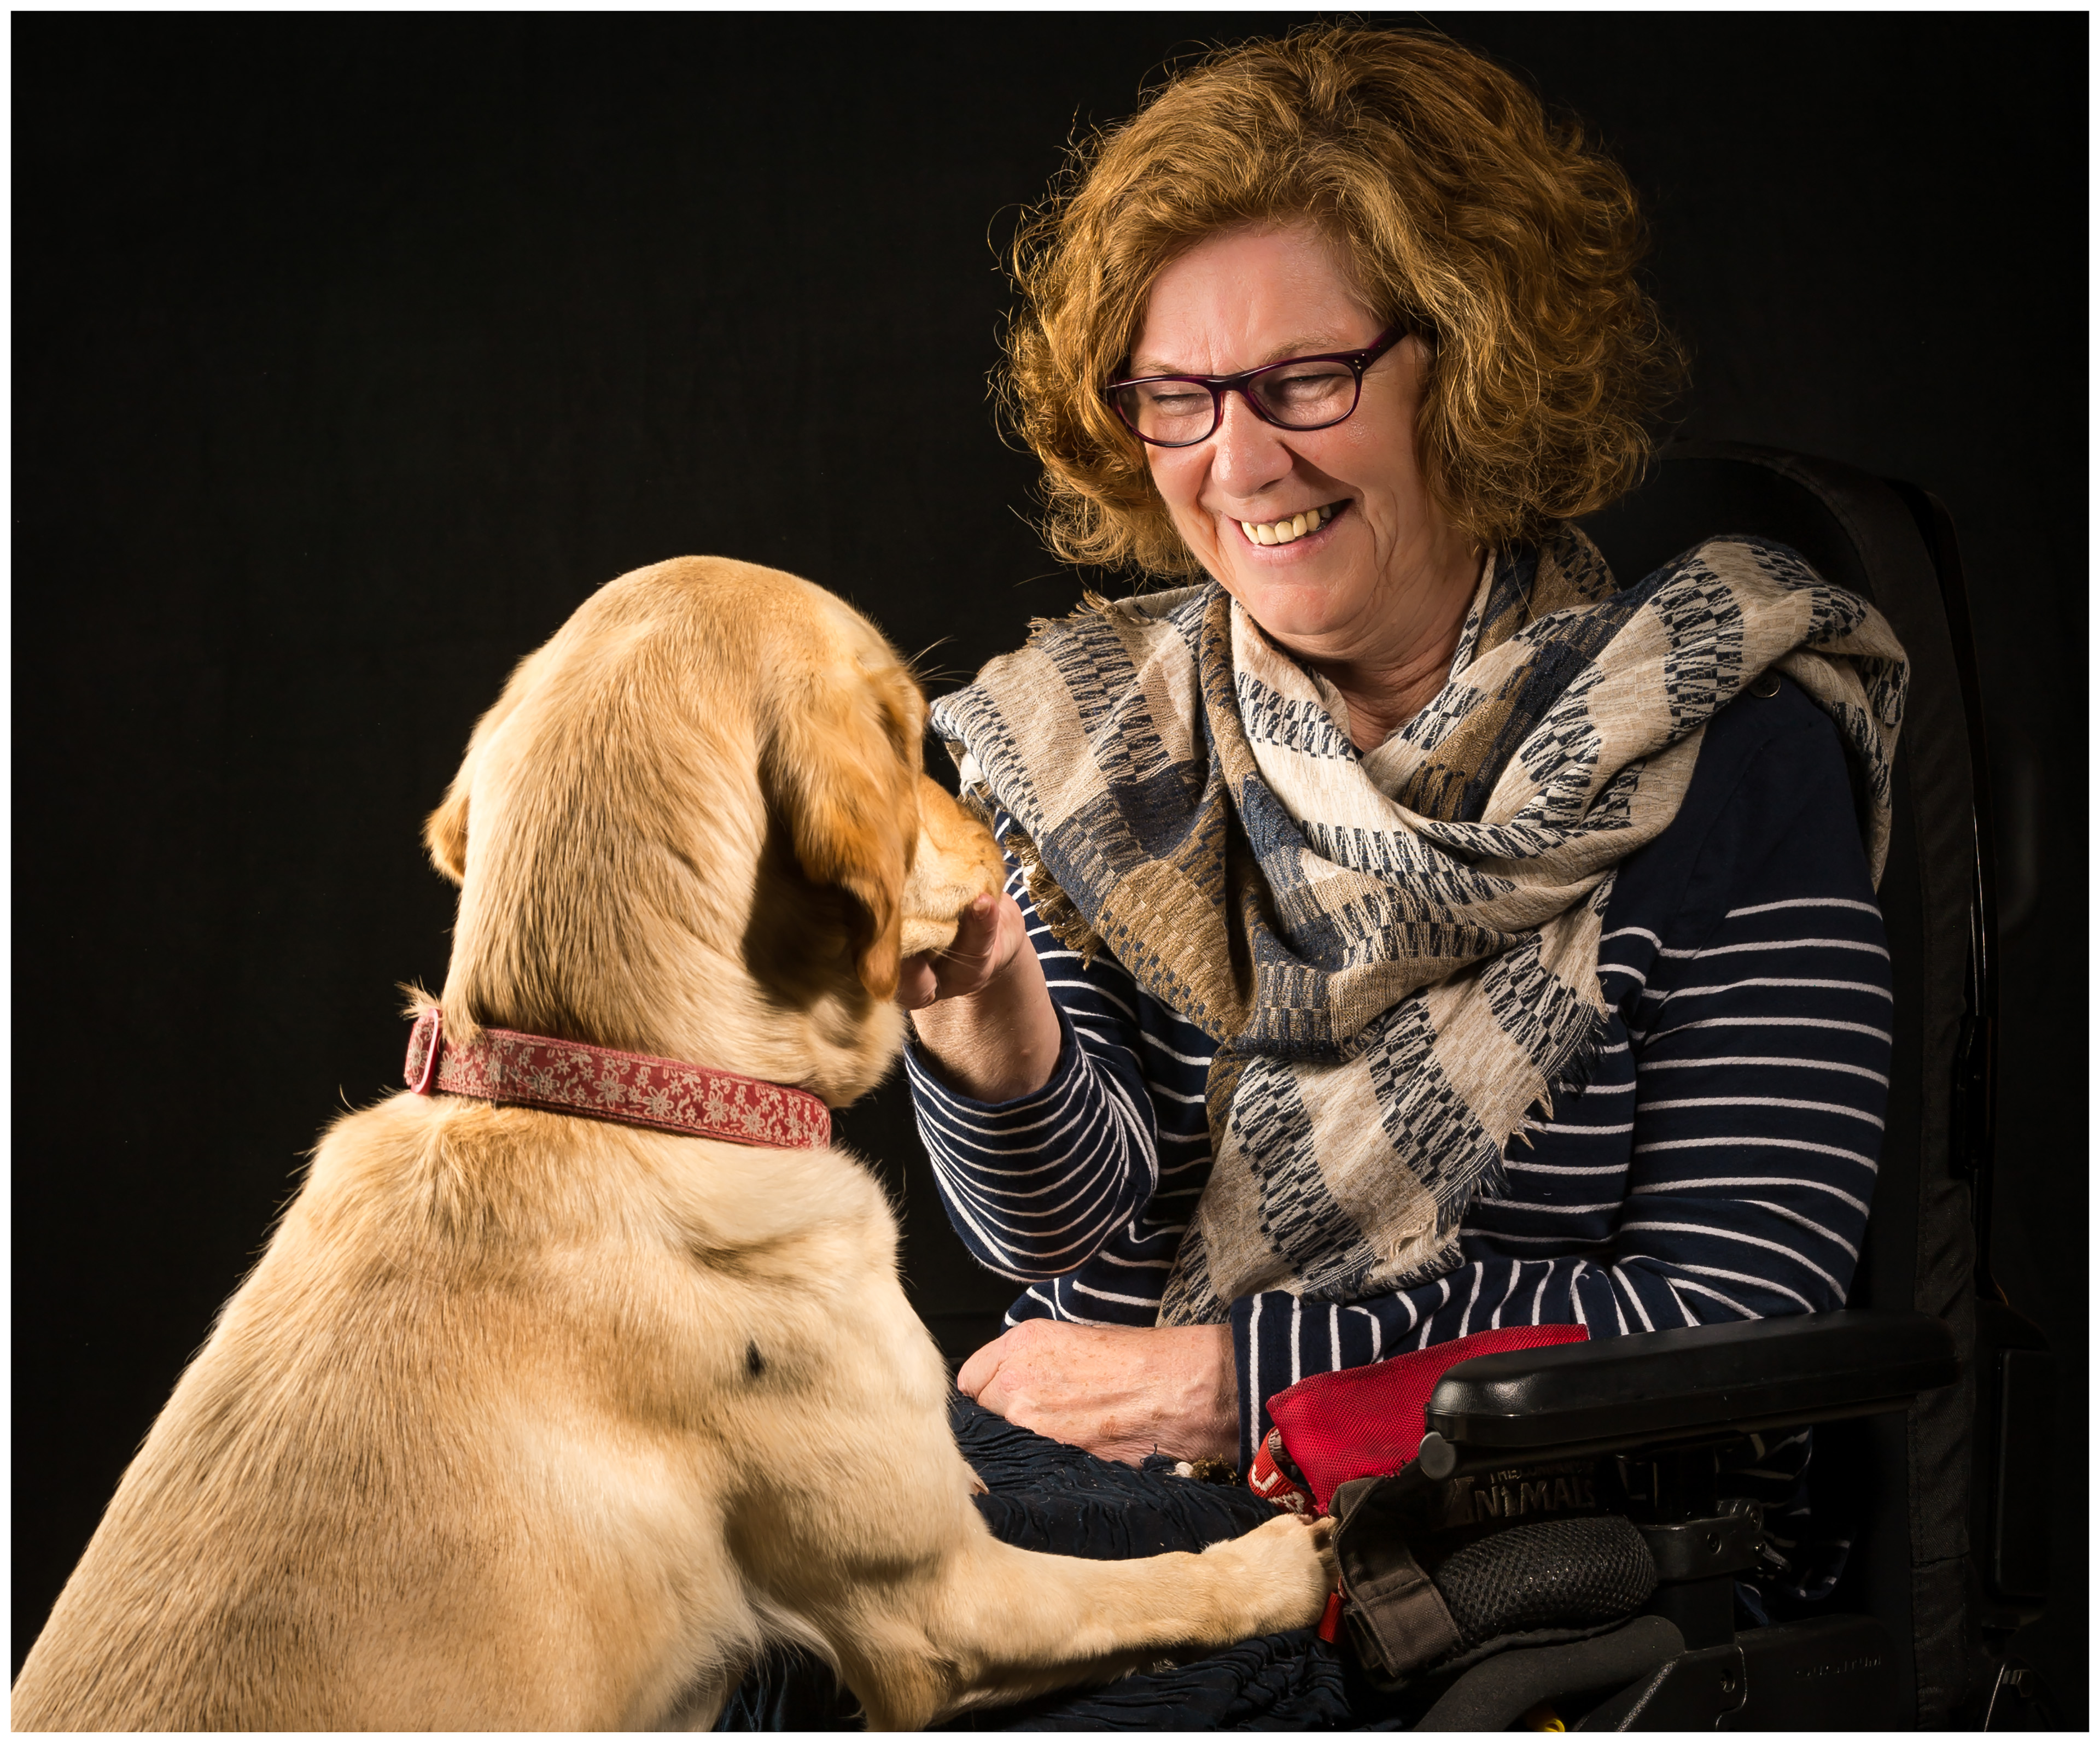 Lady in wheelchair smiling at assistance dog